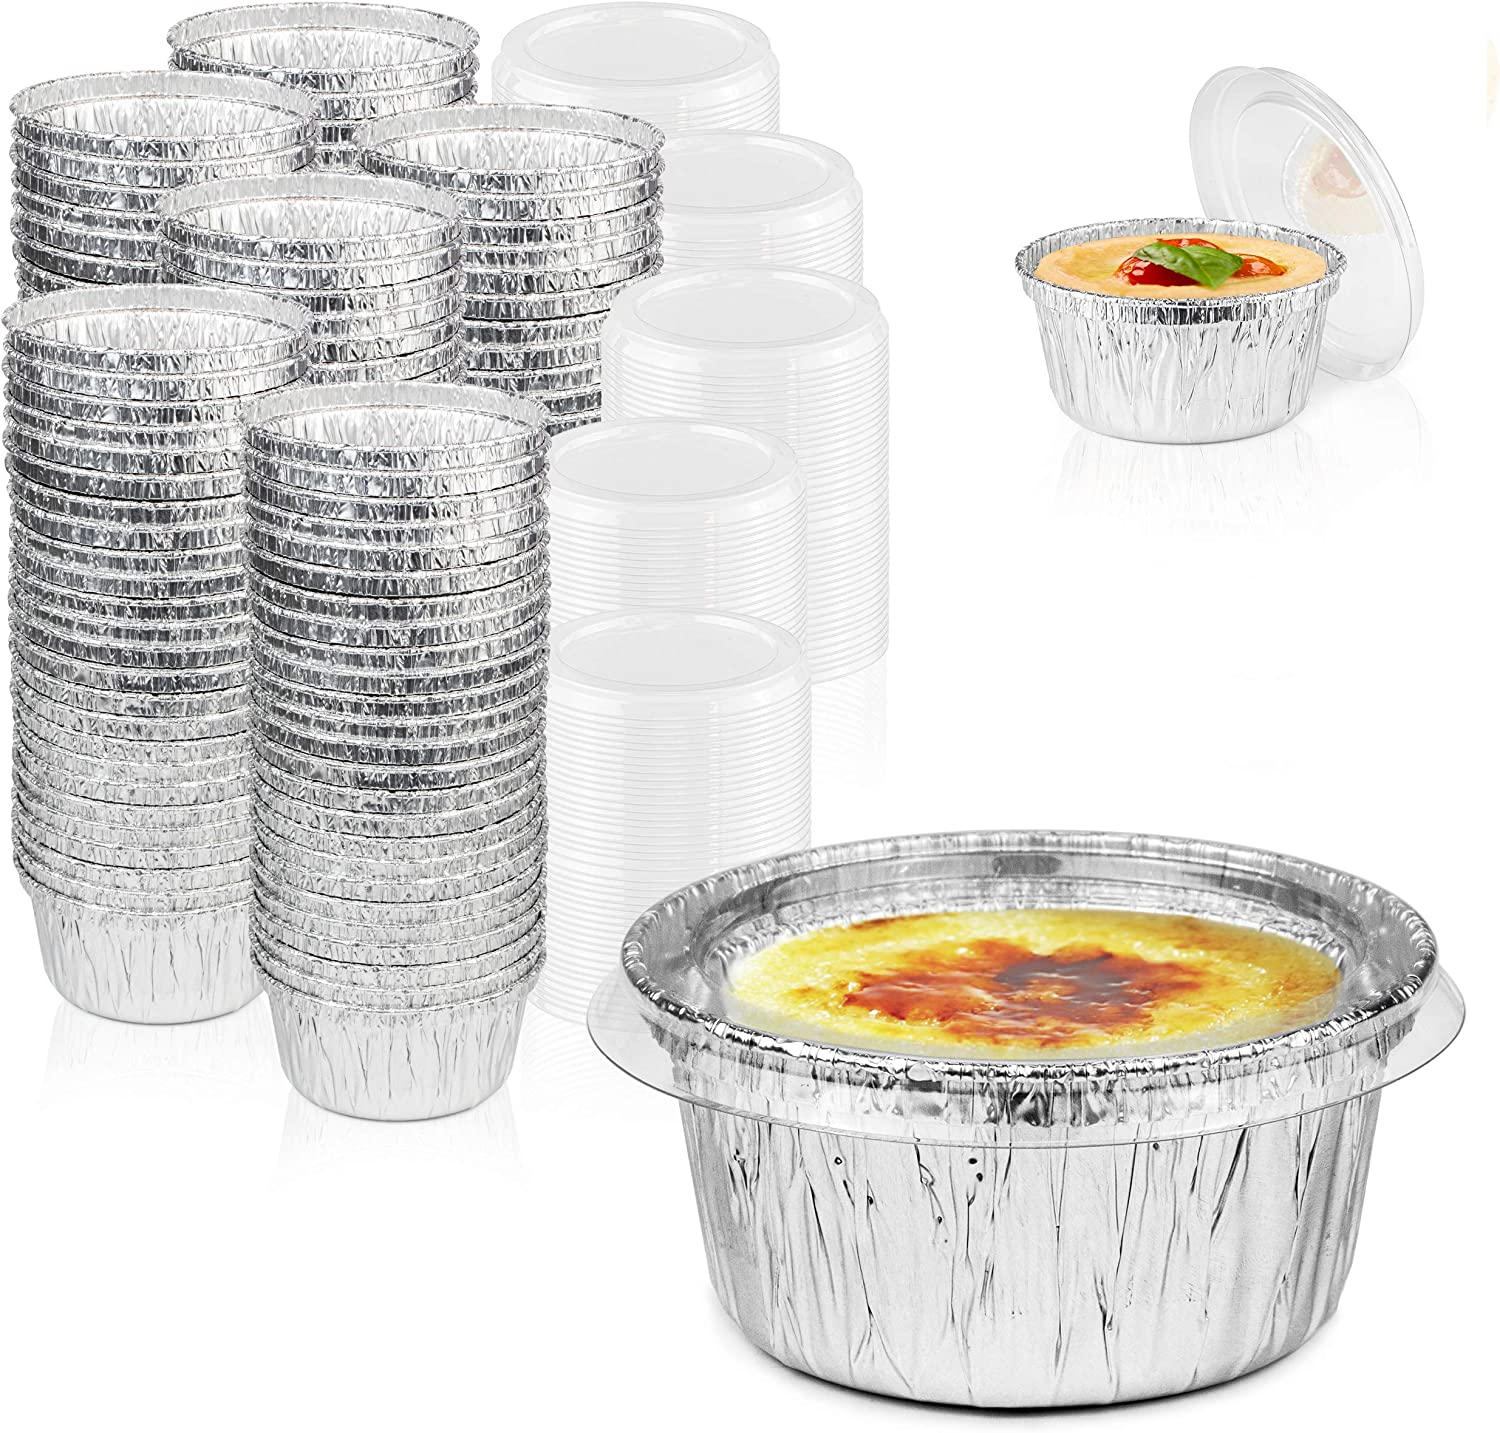 4 oz Aluminum Custard Cups with Lids Disposable Foil Baking Cups for Creme Brulee or Cupcake Disposable Foil Ramekins with Lids 50 Pack